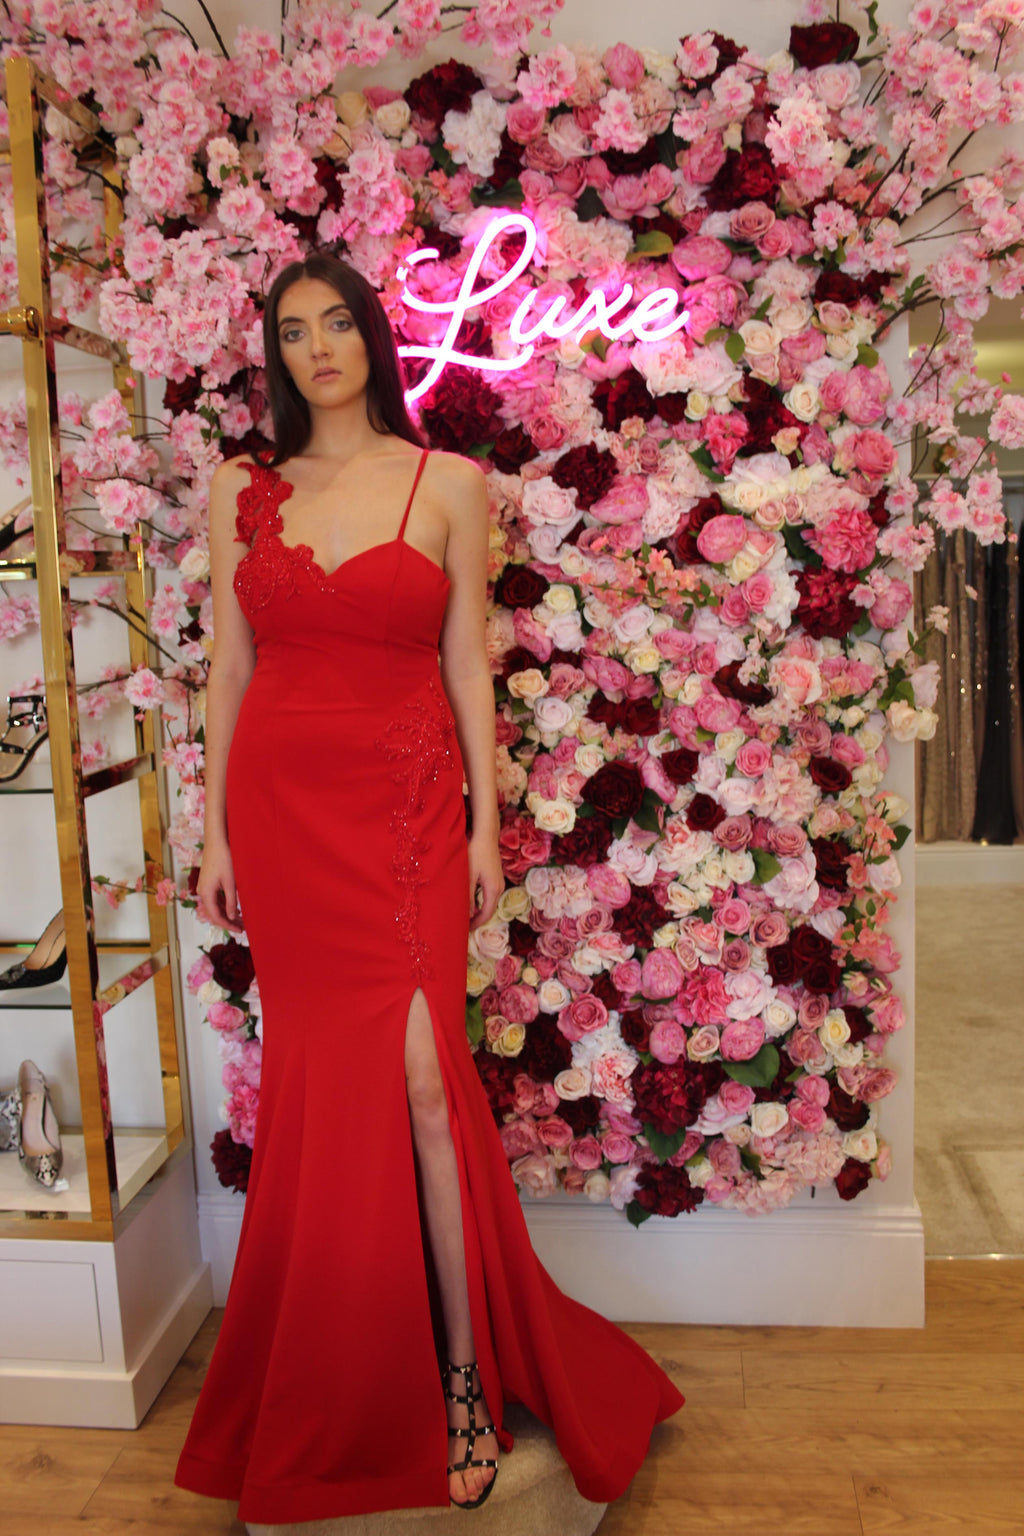 Pia Michi Red Prom Dress with Leg Slit and Floral Beaded Detail